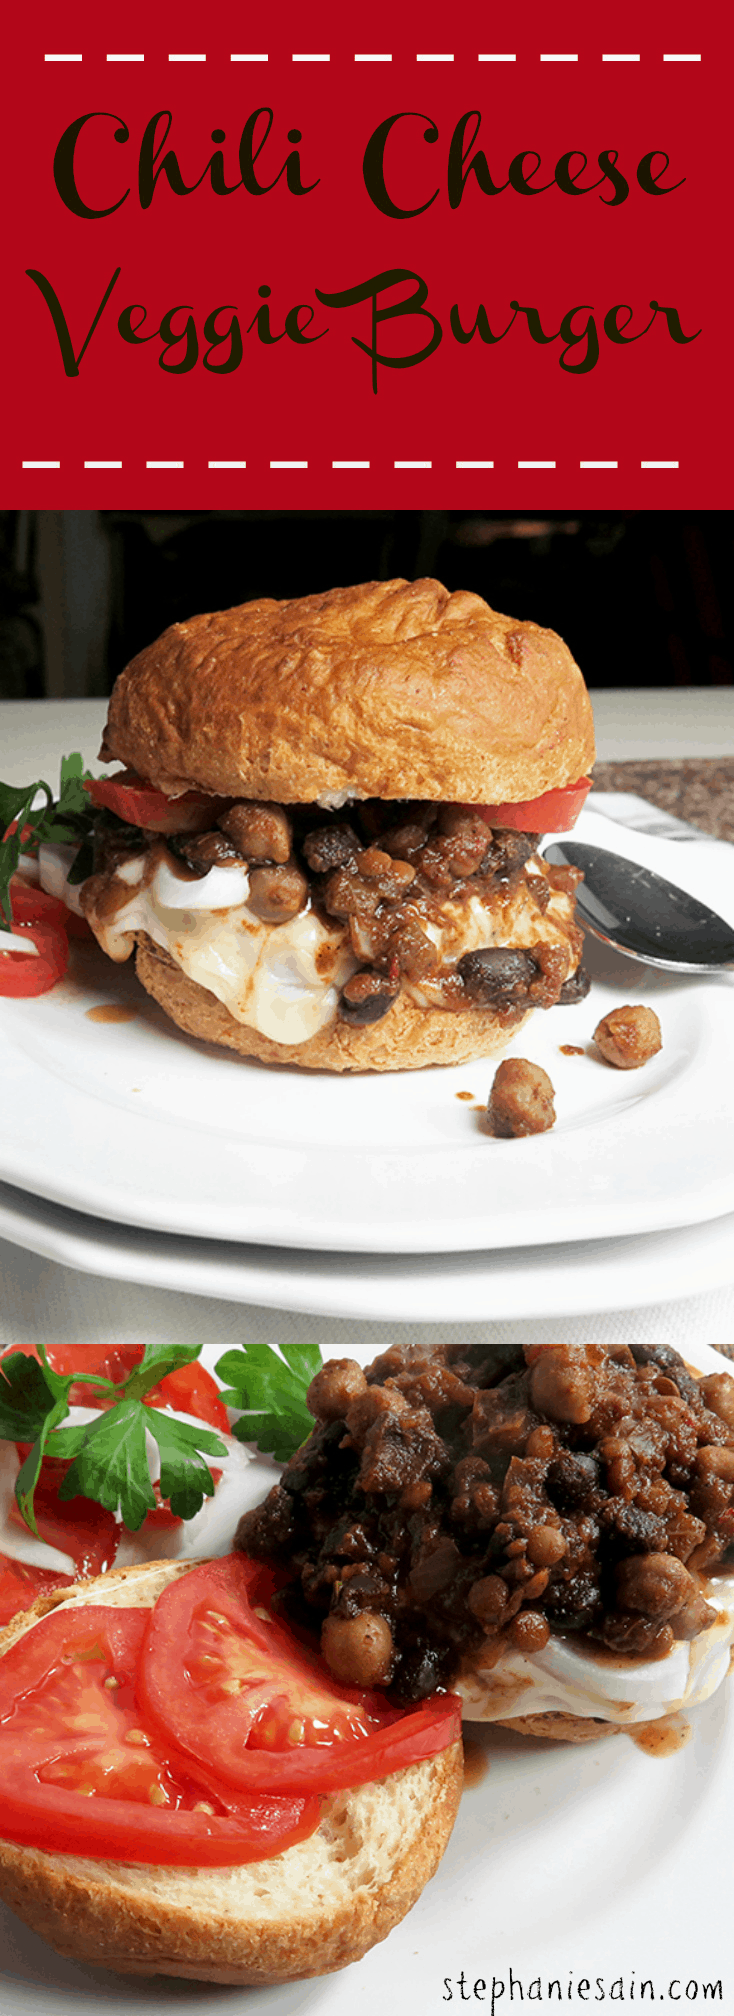 Chili Cheese Veggie Burger is a tasty, gluten free burger that is easy to prepare.